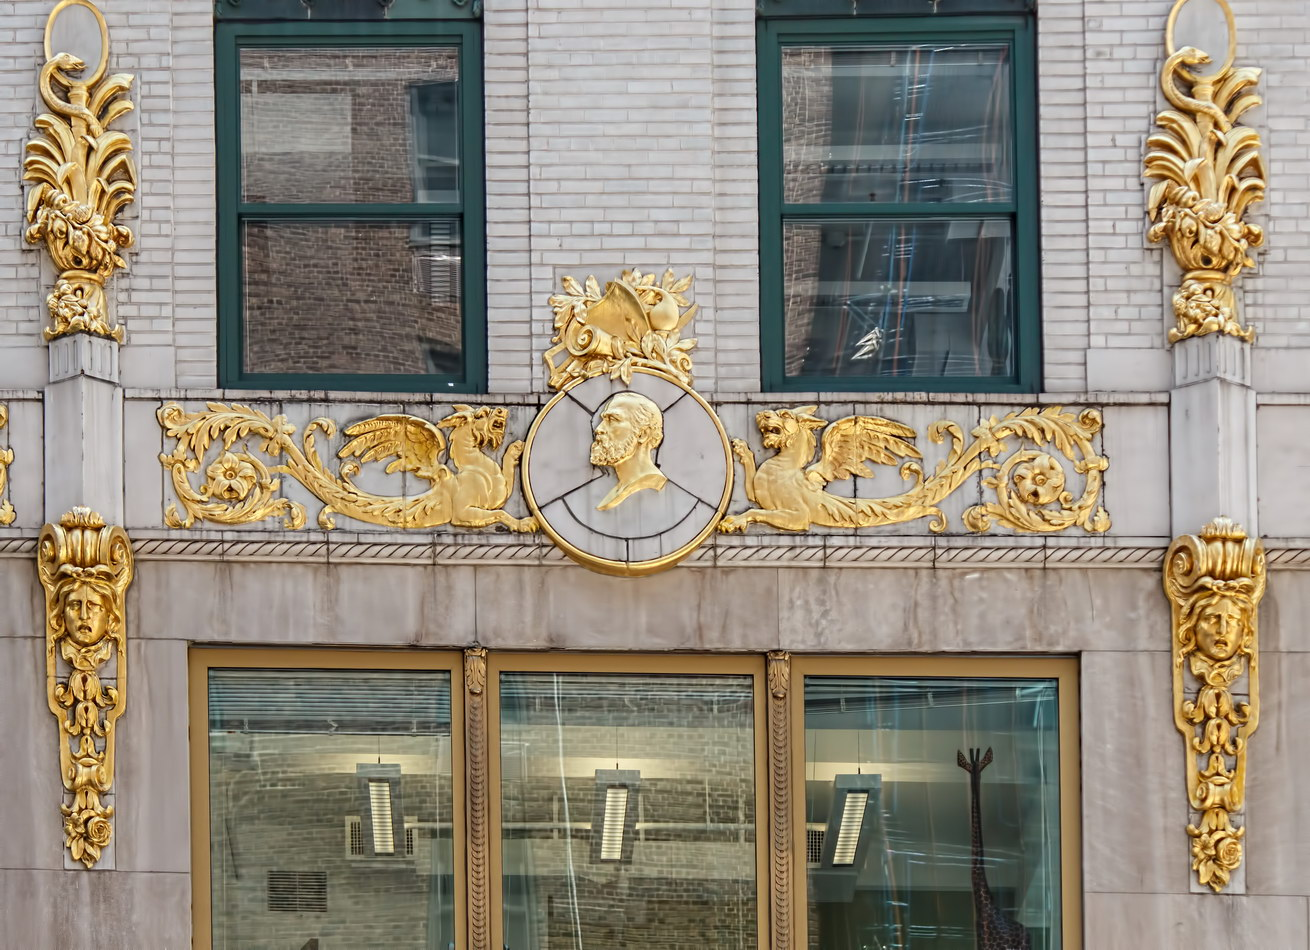 57 W 57th Street Archives 187 Newyorkitecture